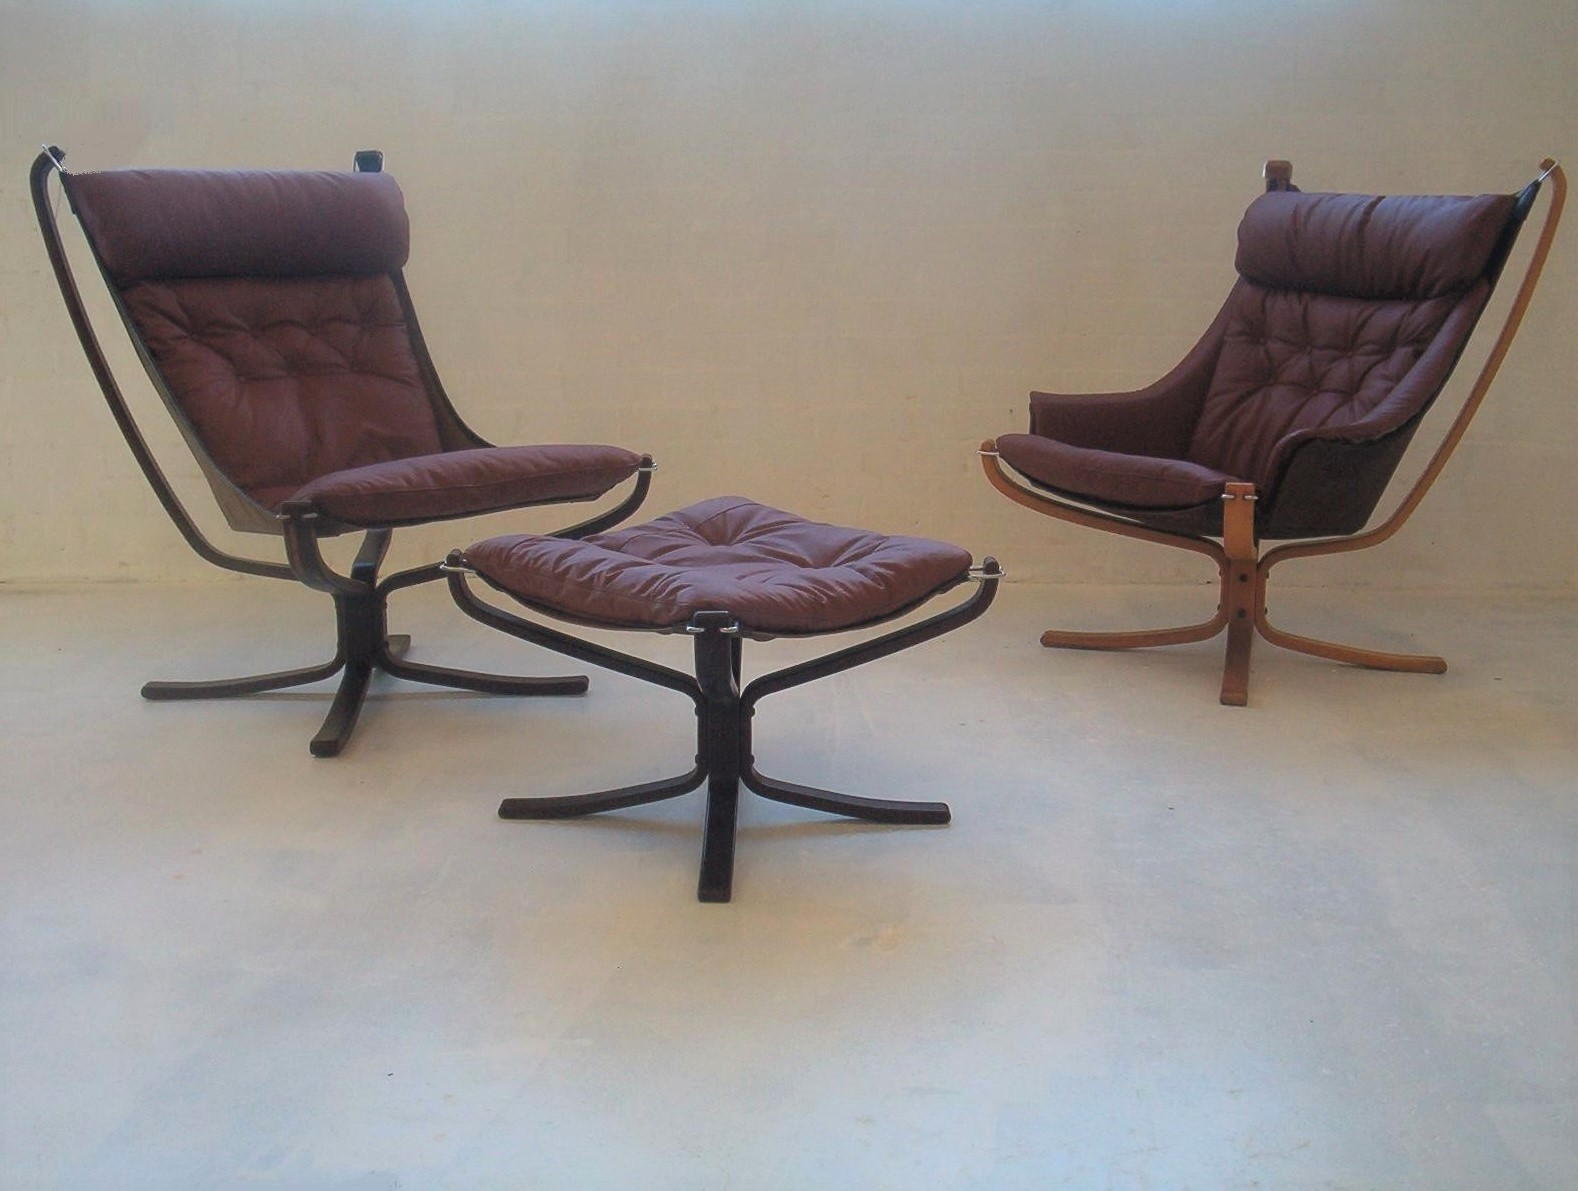 Falcon Chair Falcon Chair Leather Vatne Mobler Rosewood Vintage Danish Inspired